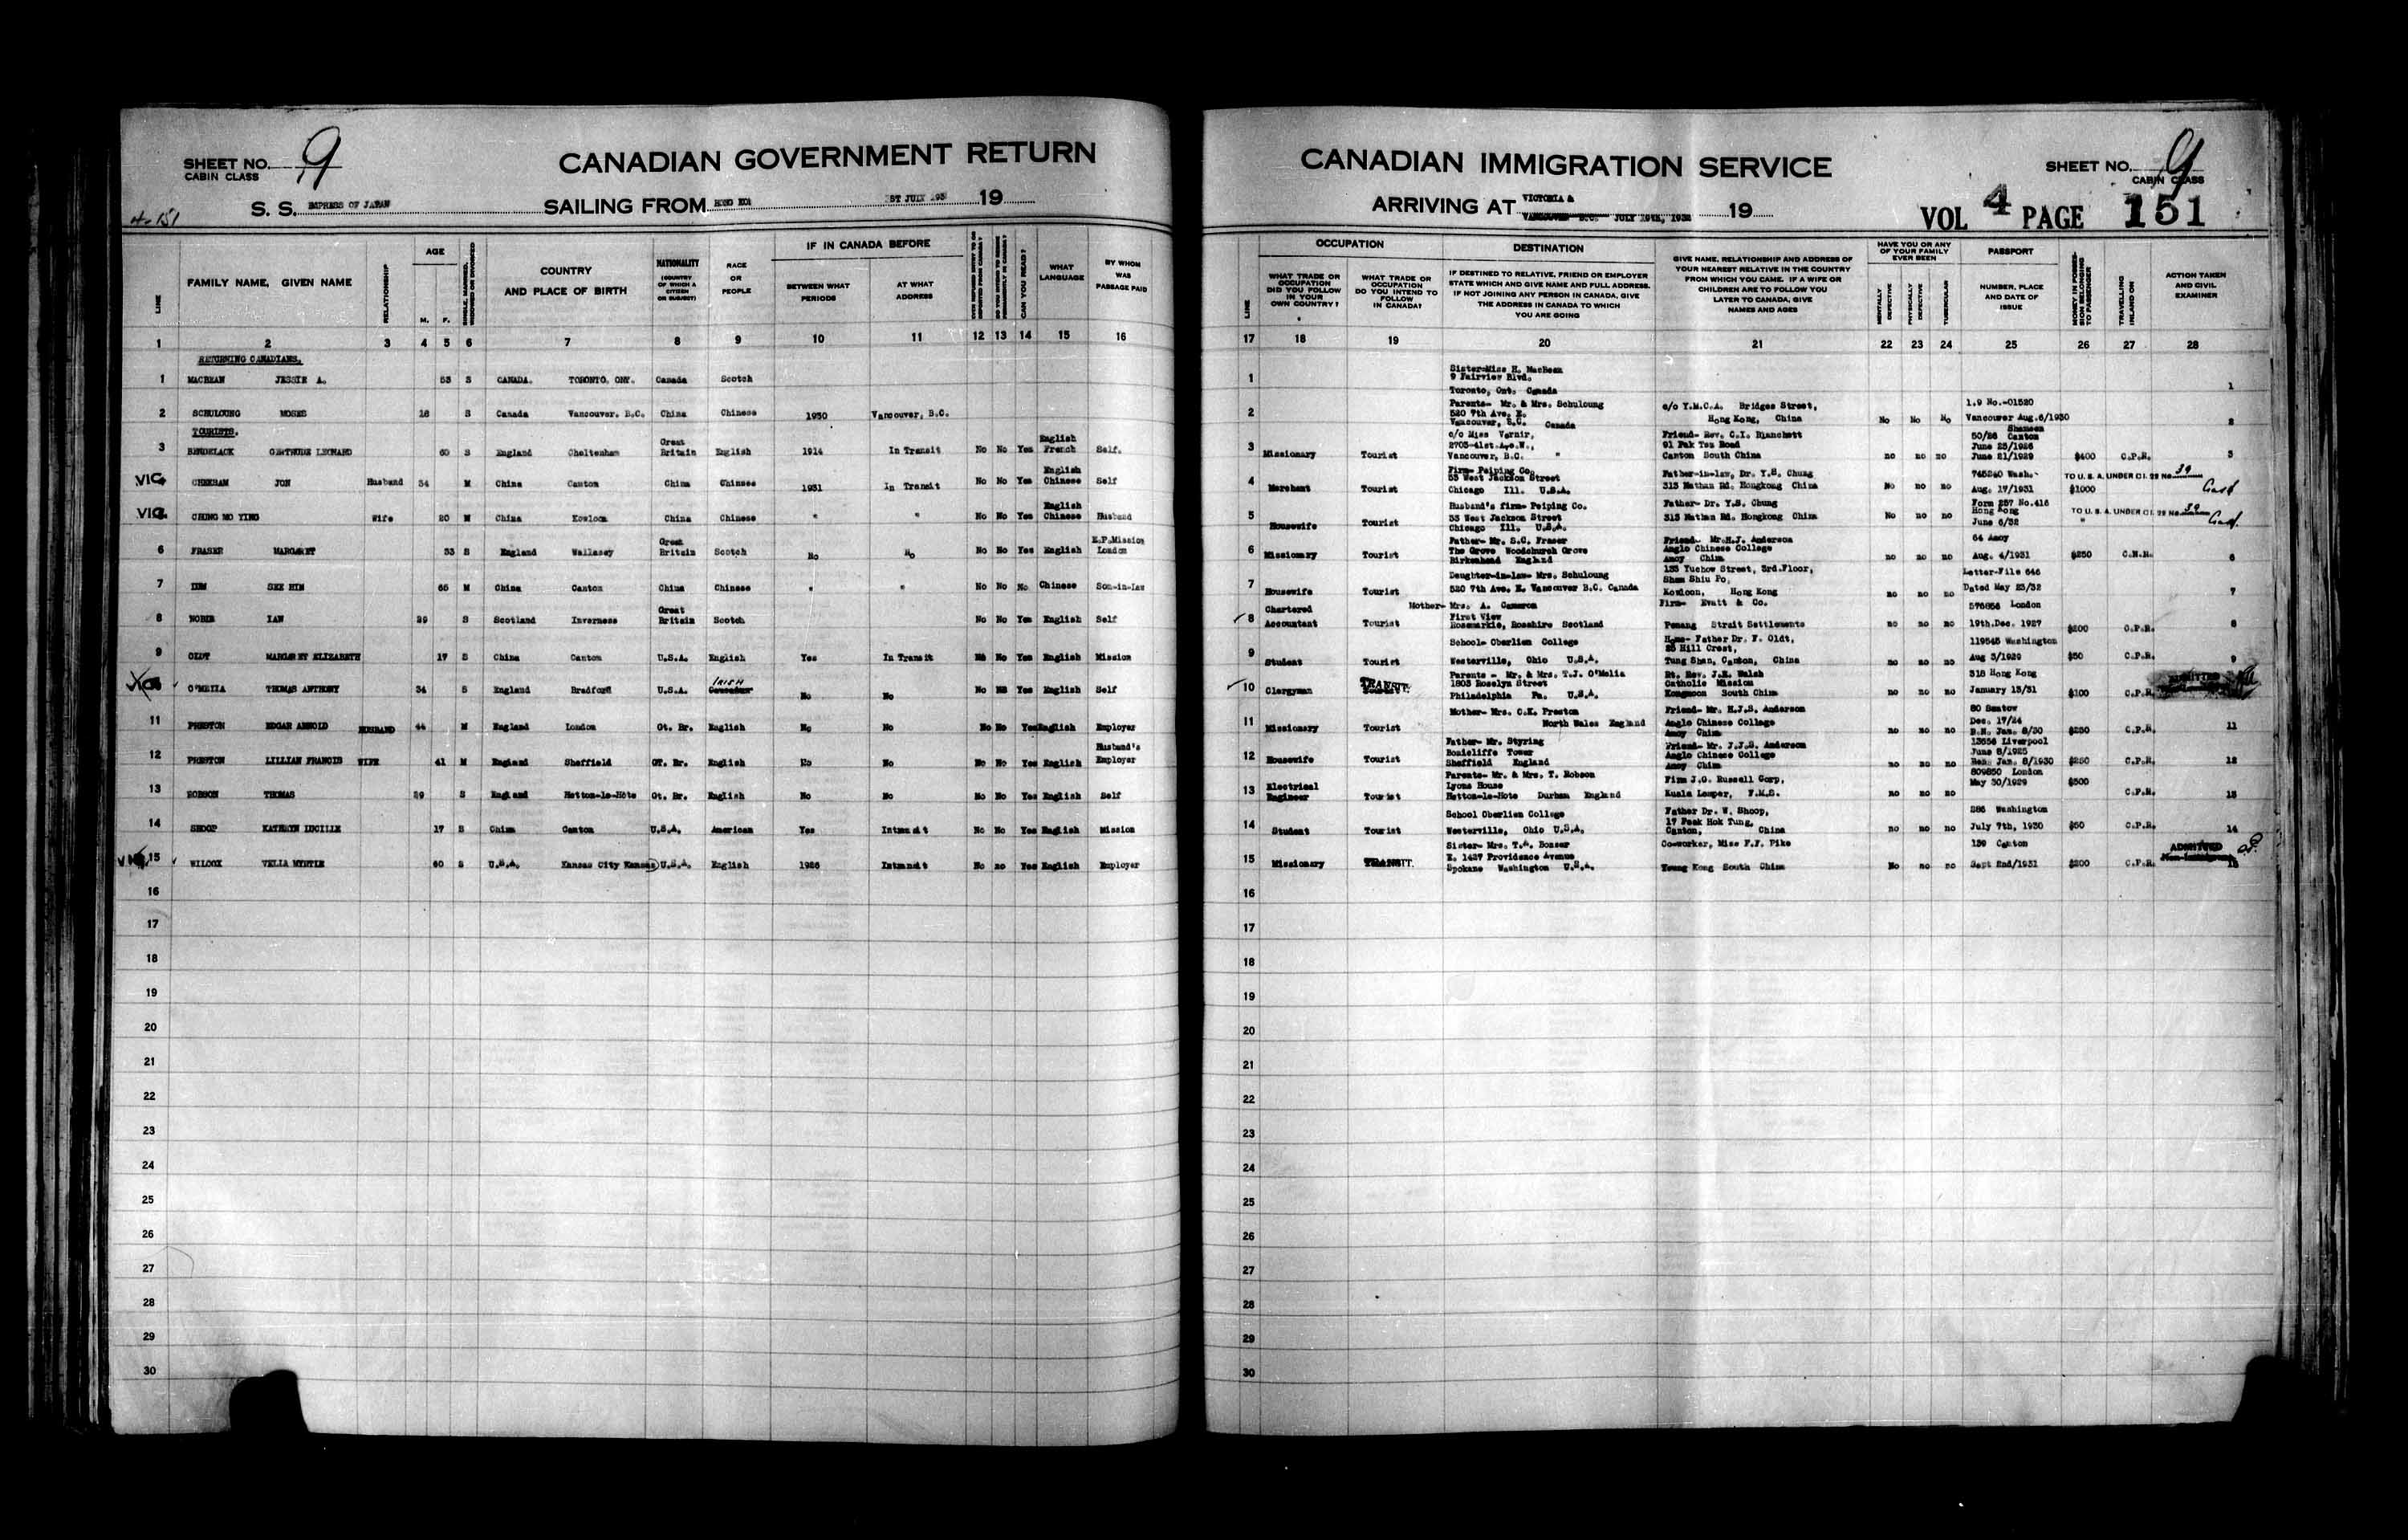 Title: Passenger Lists: Vancouver and Victoria (1925-1935) - Mikan Number: 161347 - Microform: t-14902